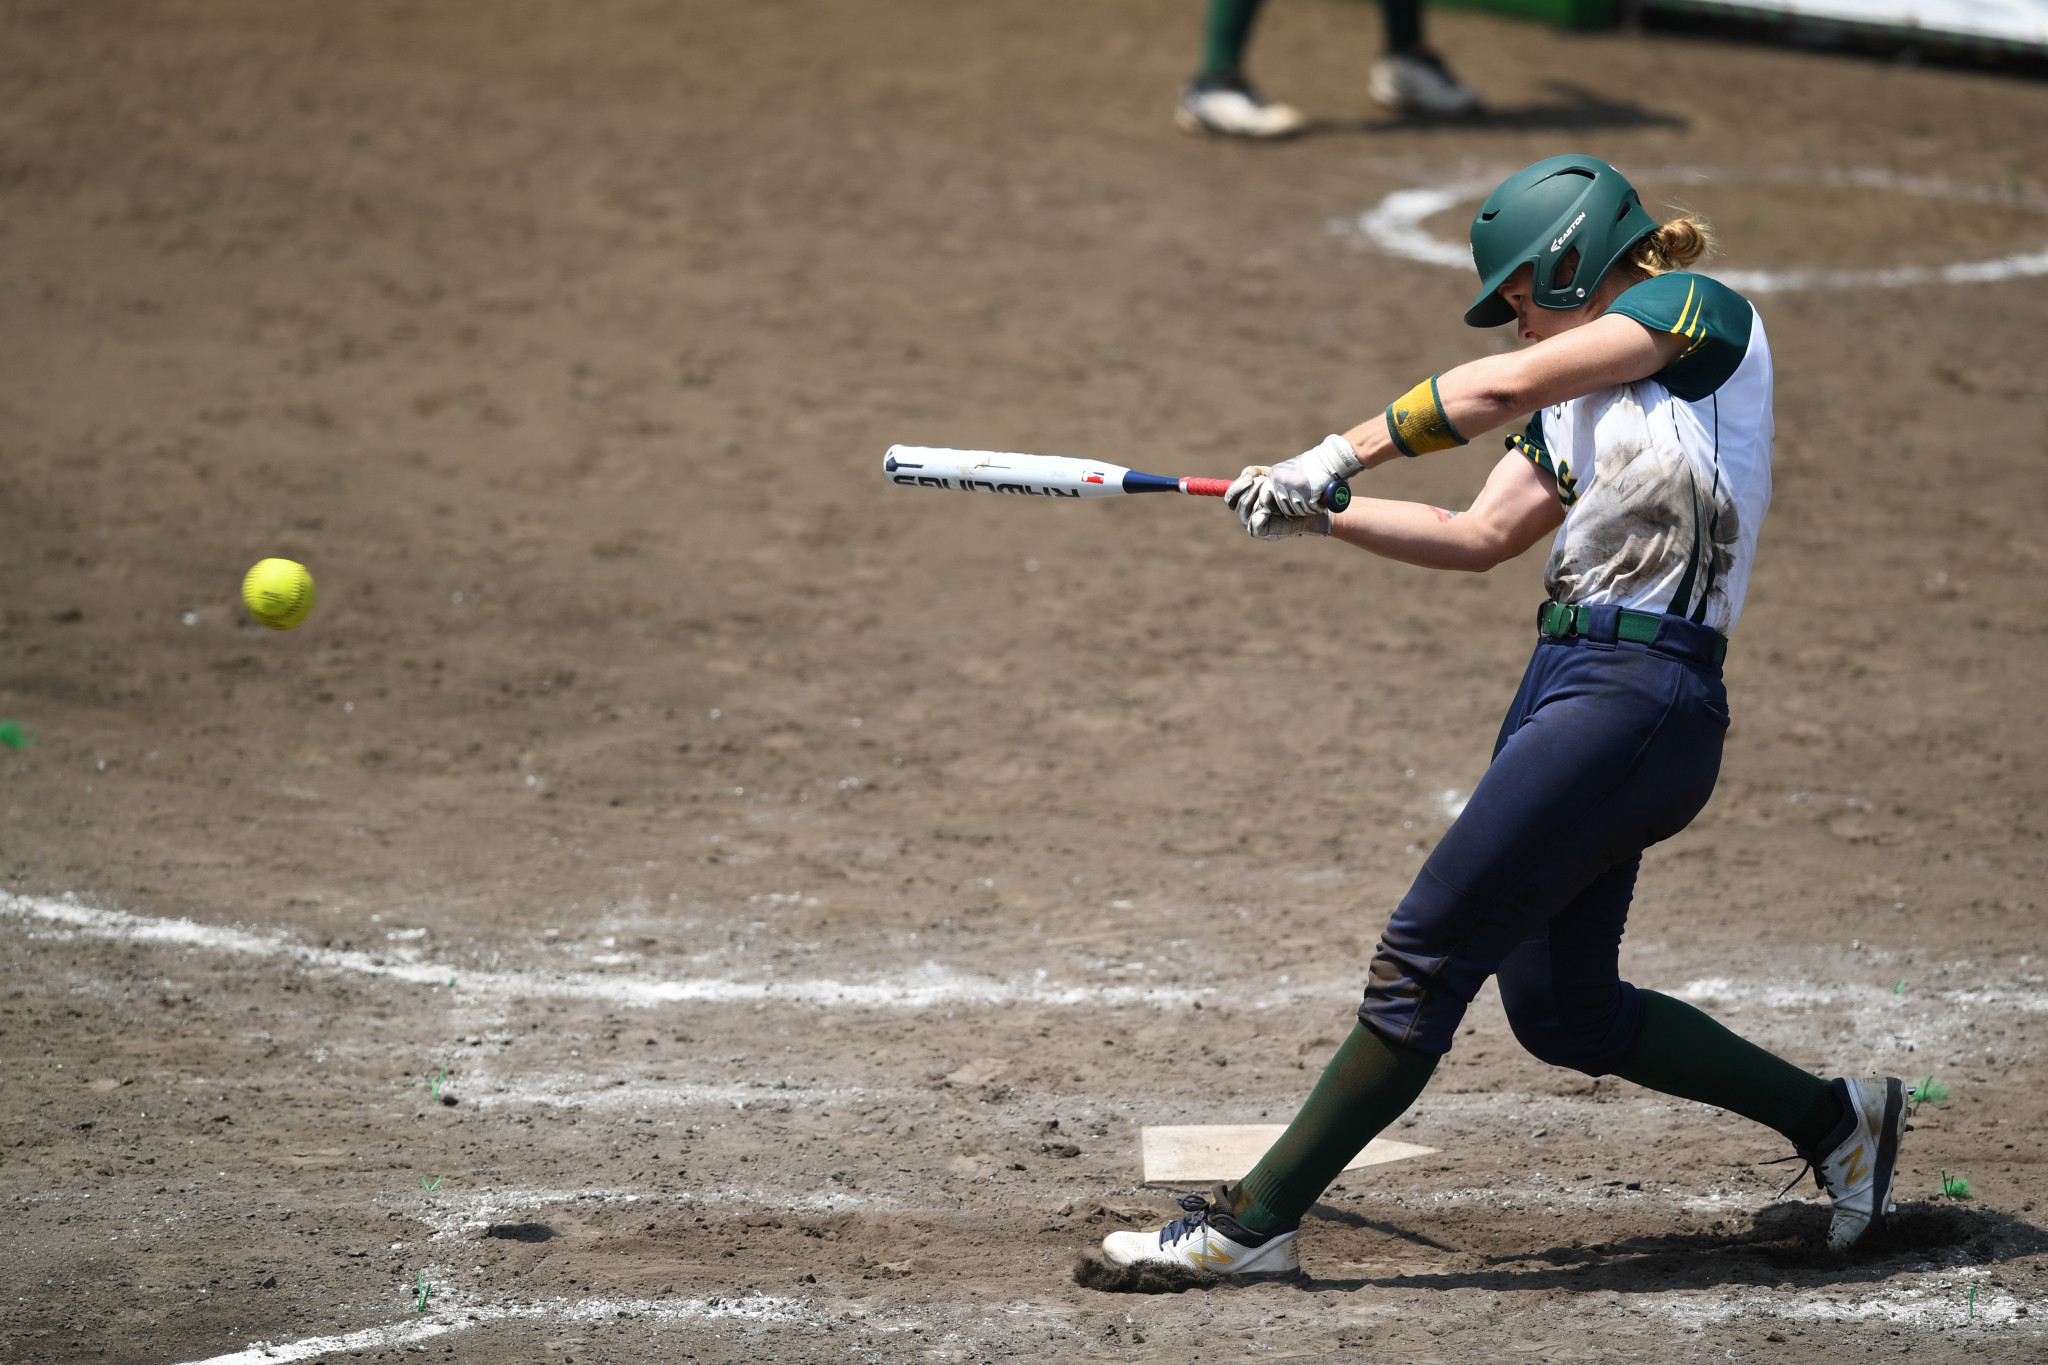 """Australian softball star Stacey Porter claimed the postponement of the Tokyo 2020 Olympics made her """"hungrier"""" to compete ©Getty Images"""